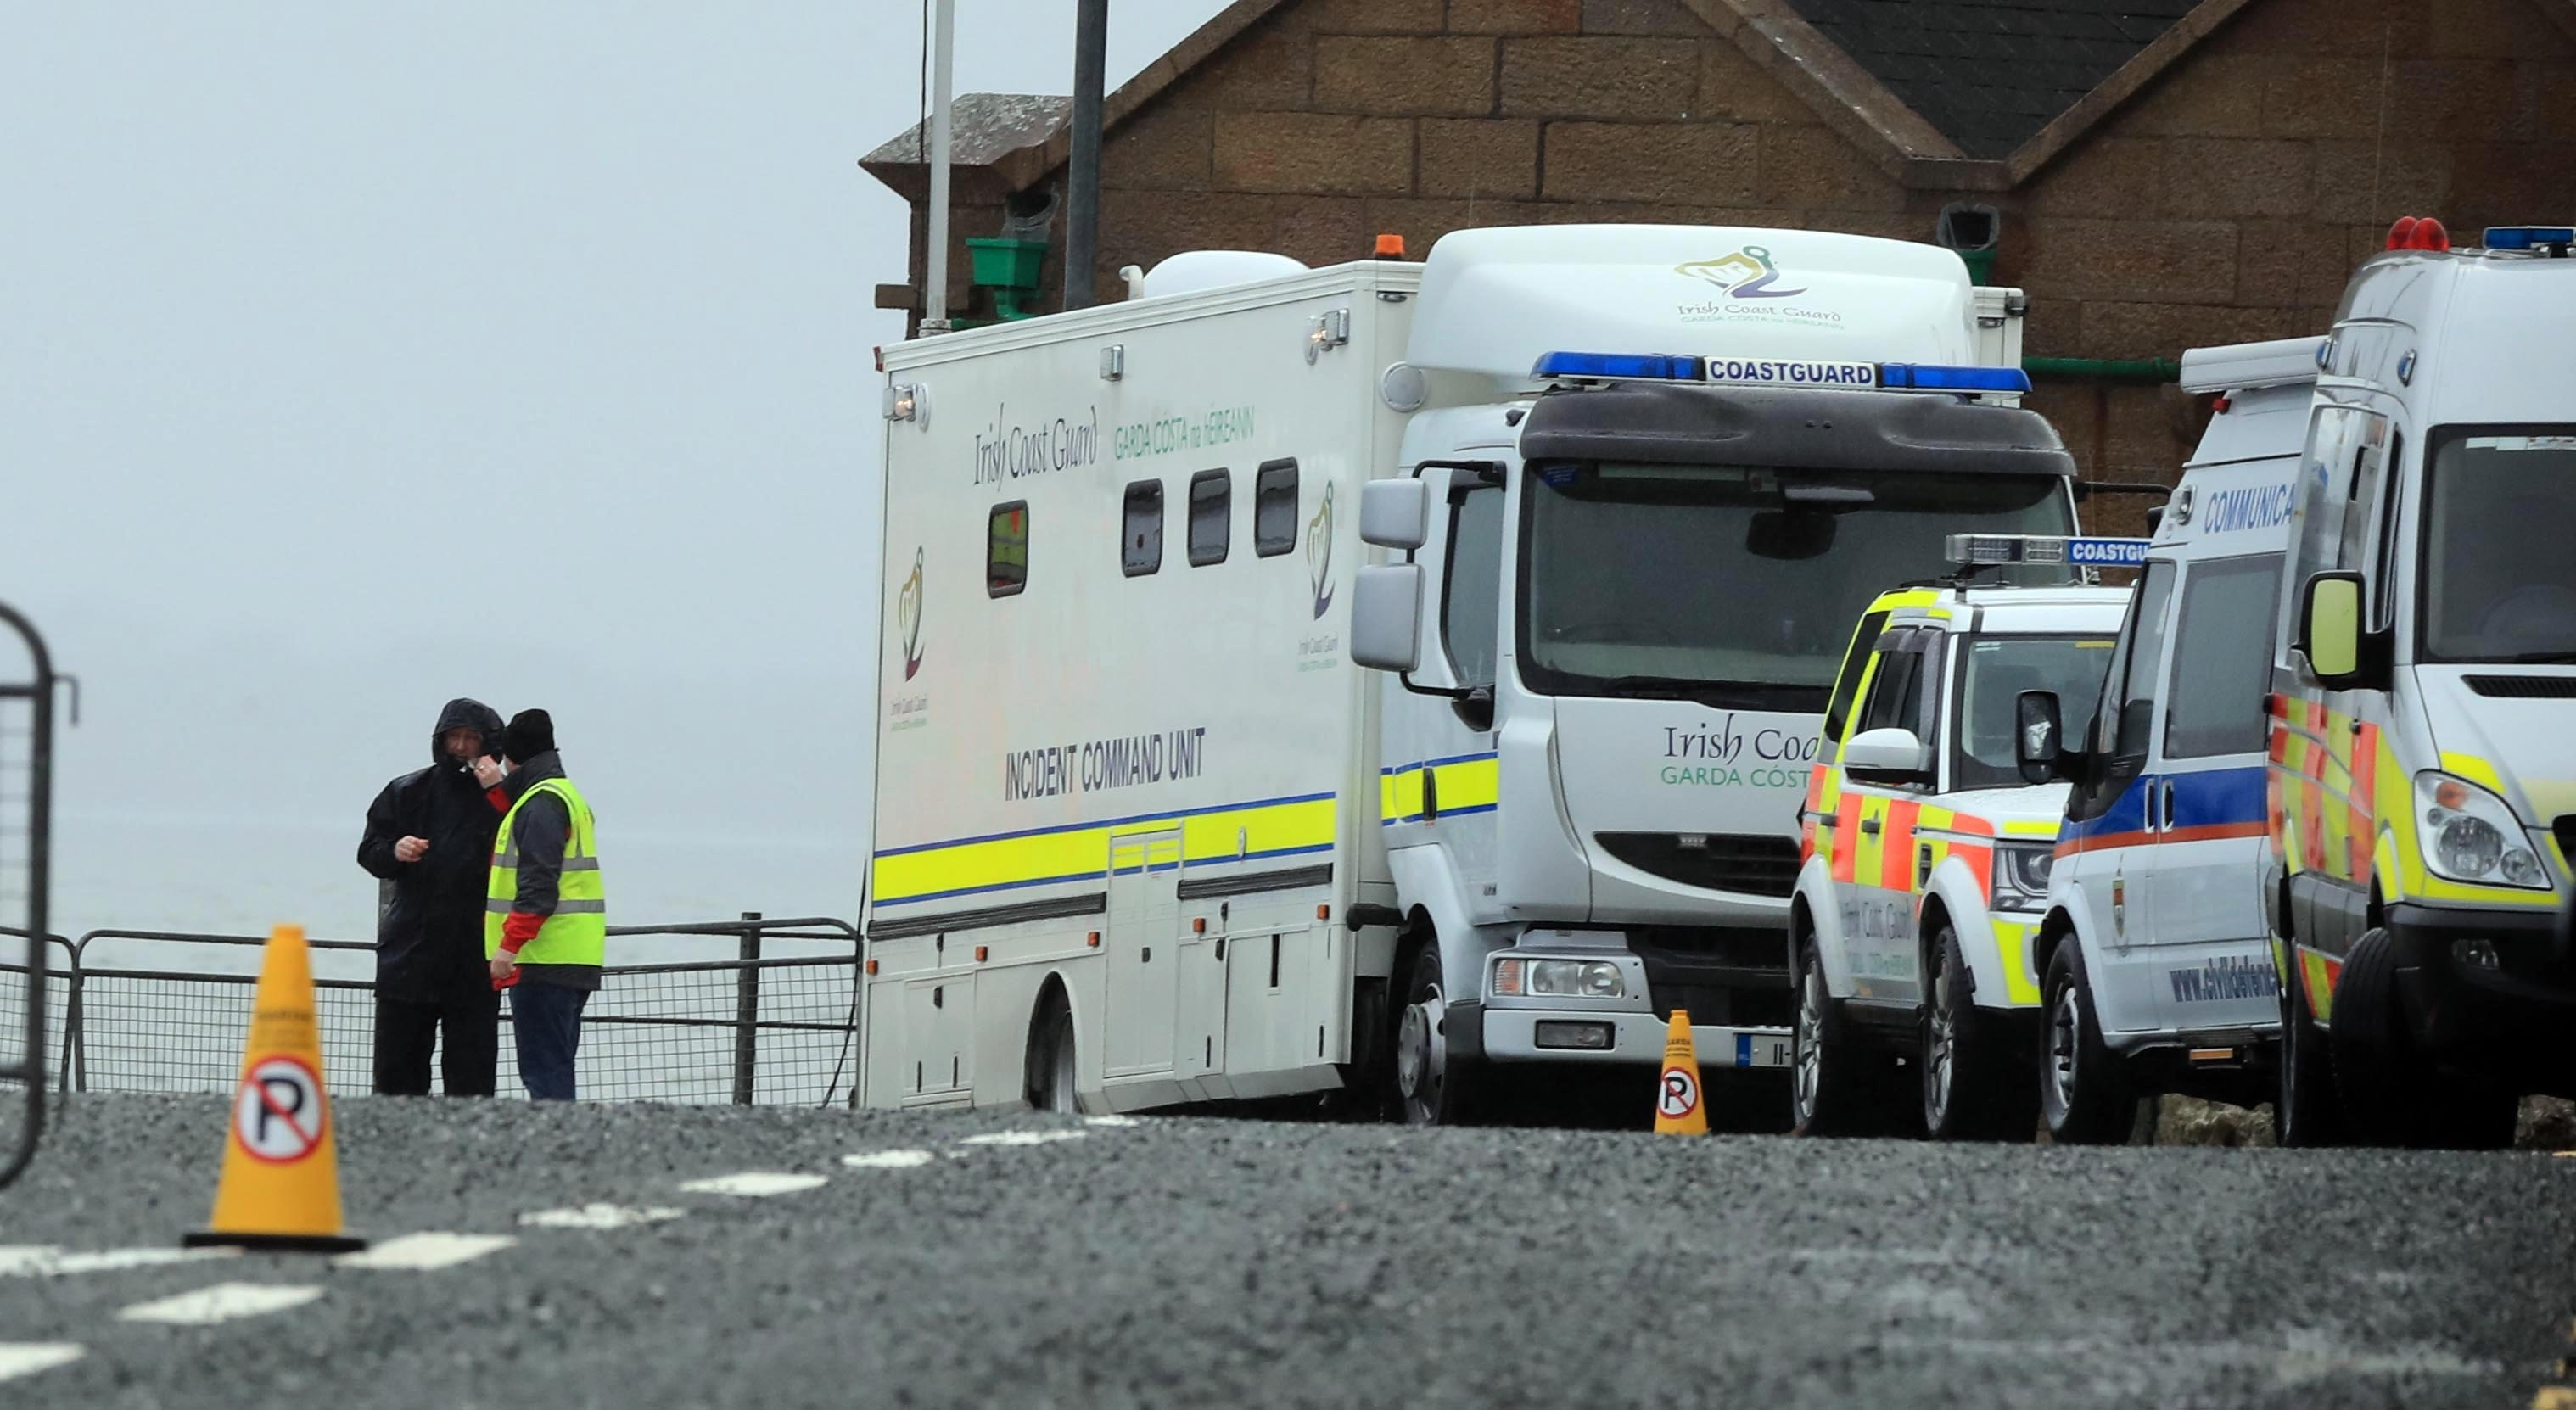 Irish Coastguard vehicles at Blacksod Lighthouse, Co. Mayo, Ireland as the search continues for an Irish Coast Guard helicopter which went missing off the west coast of Ireland